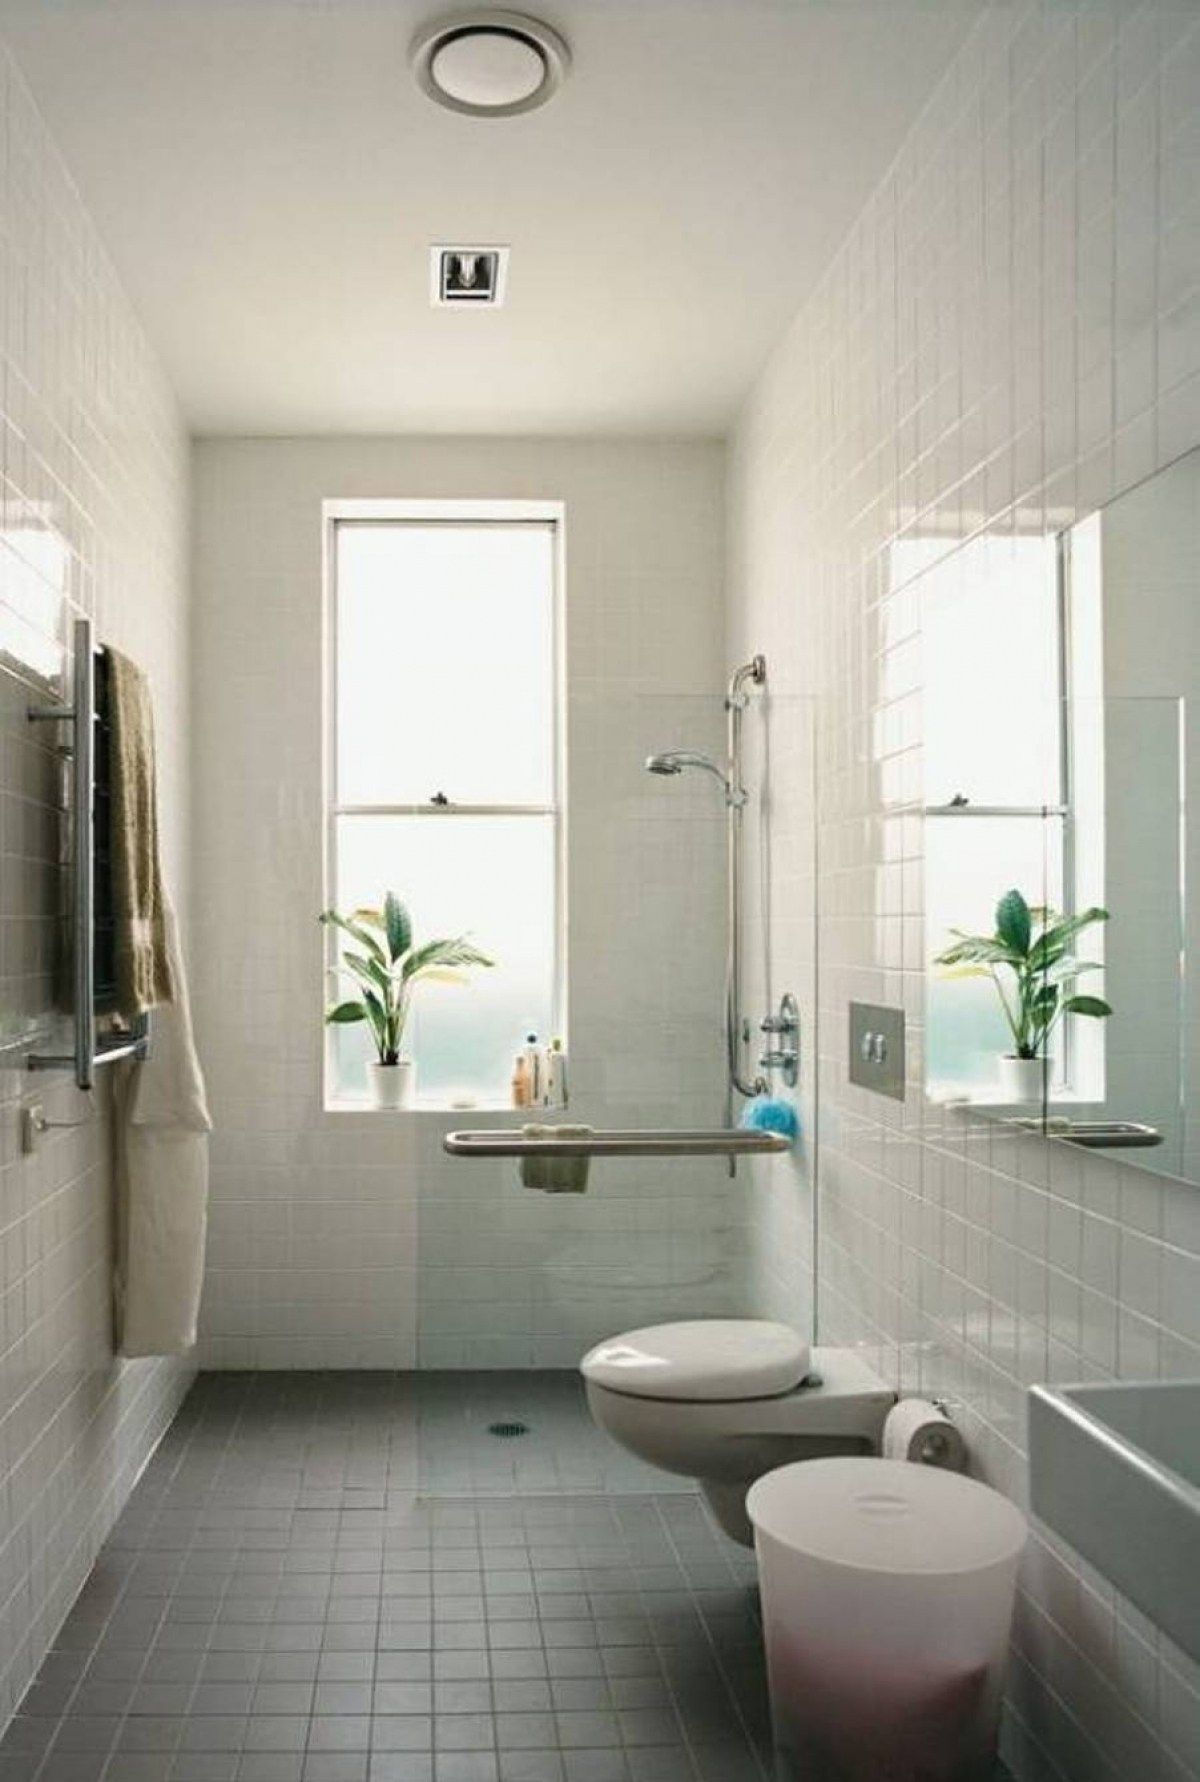 Bathroom Small Narrow Bathroom Ideas Tub Shower Popular Narrow Bathroom Ideas Tub Narrow